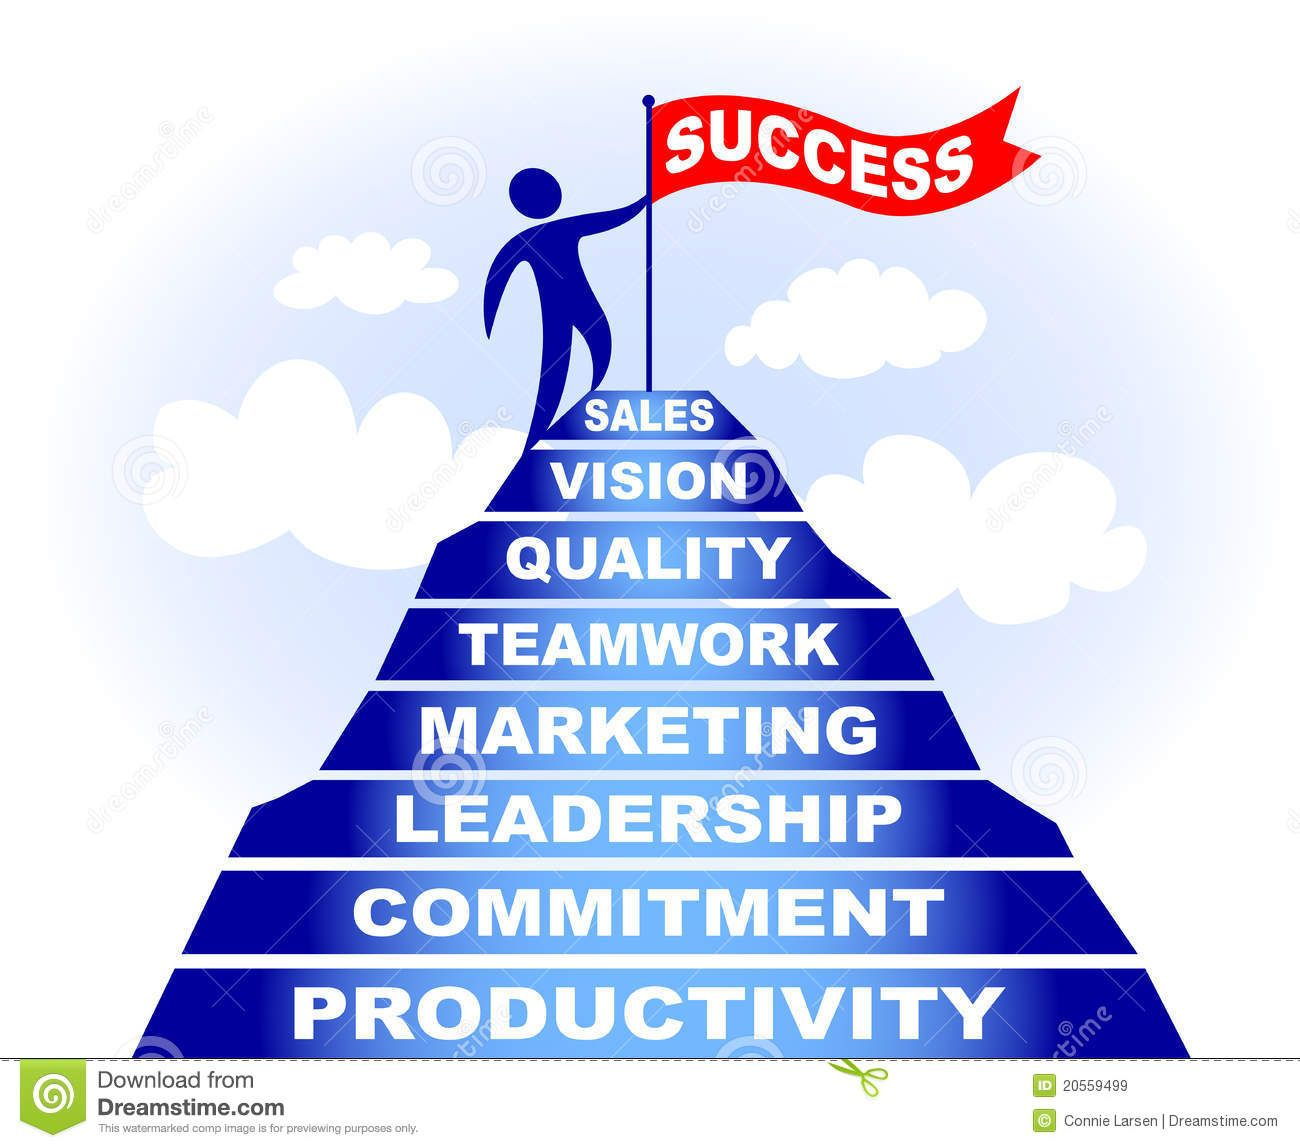 business success images Google Search Business